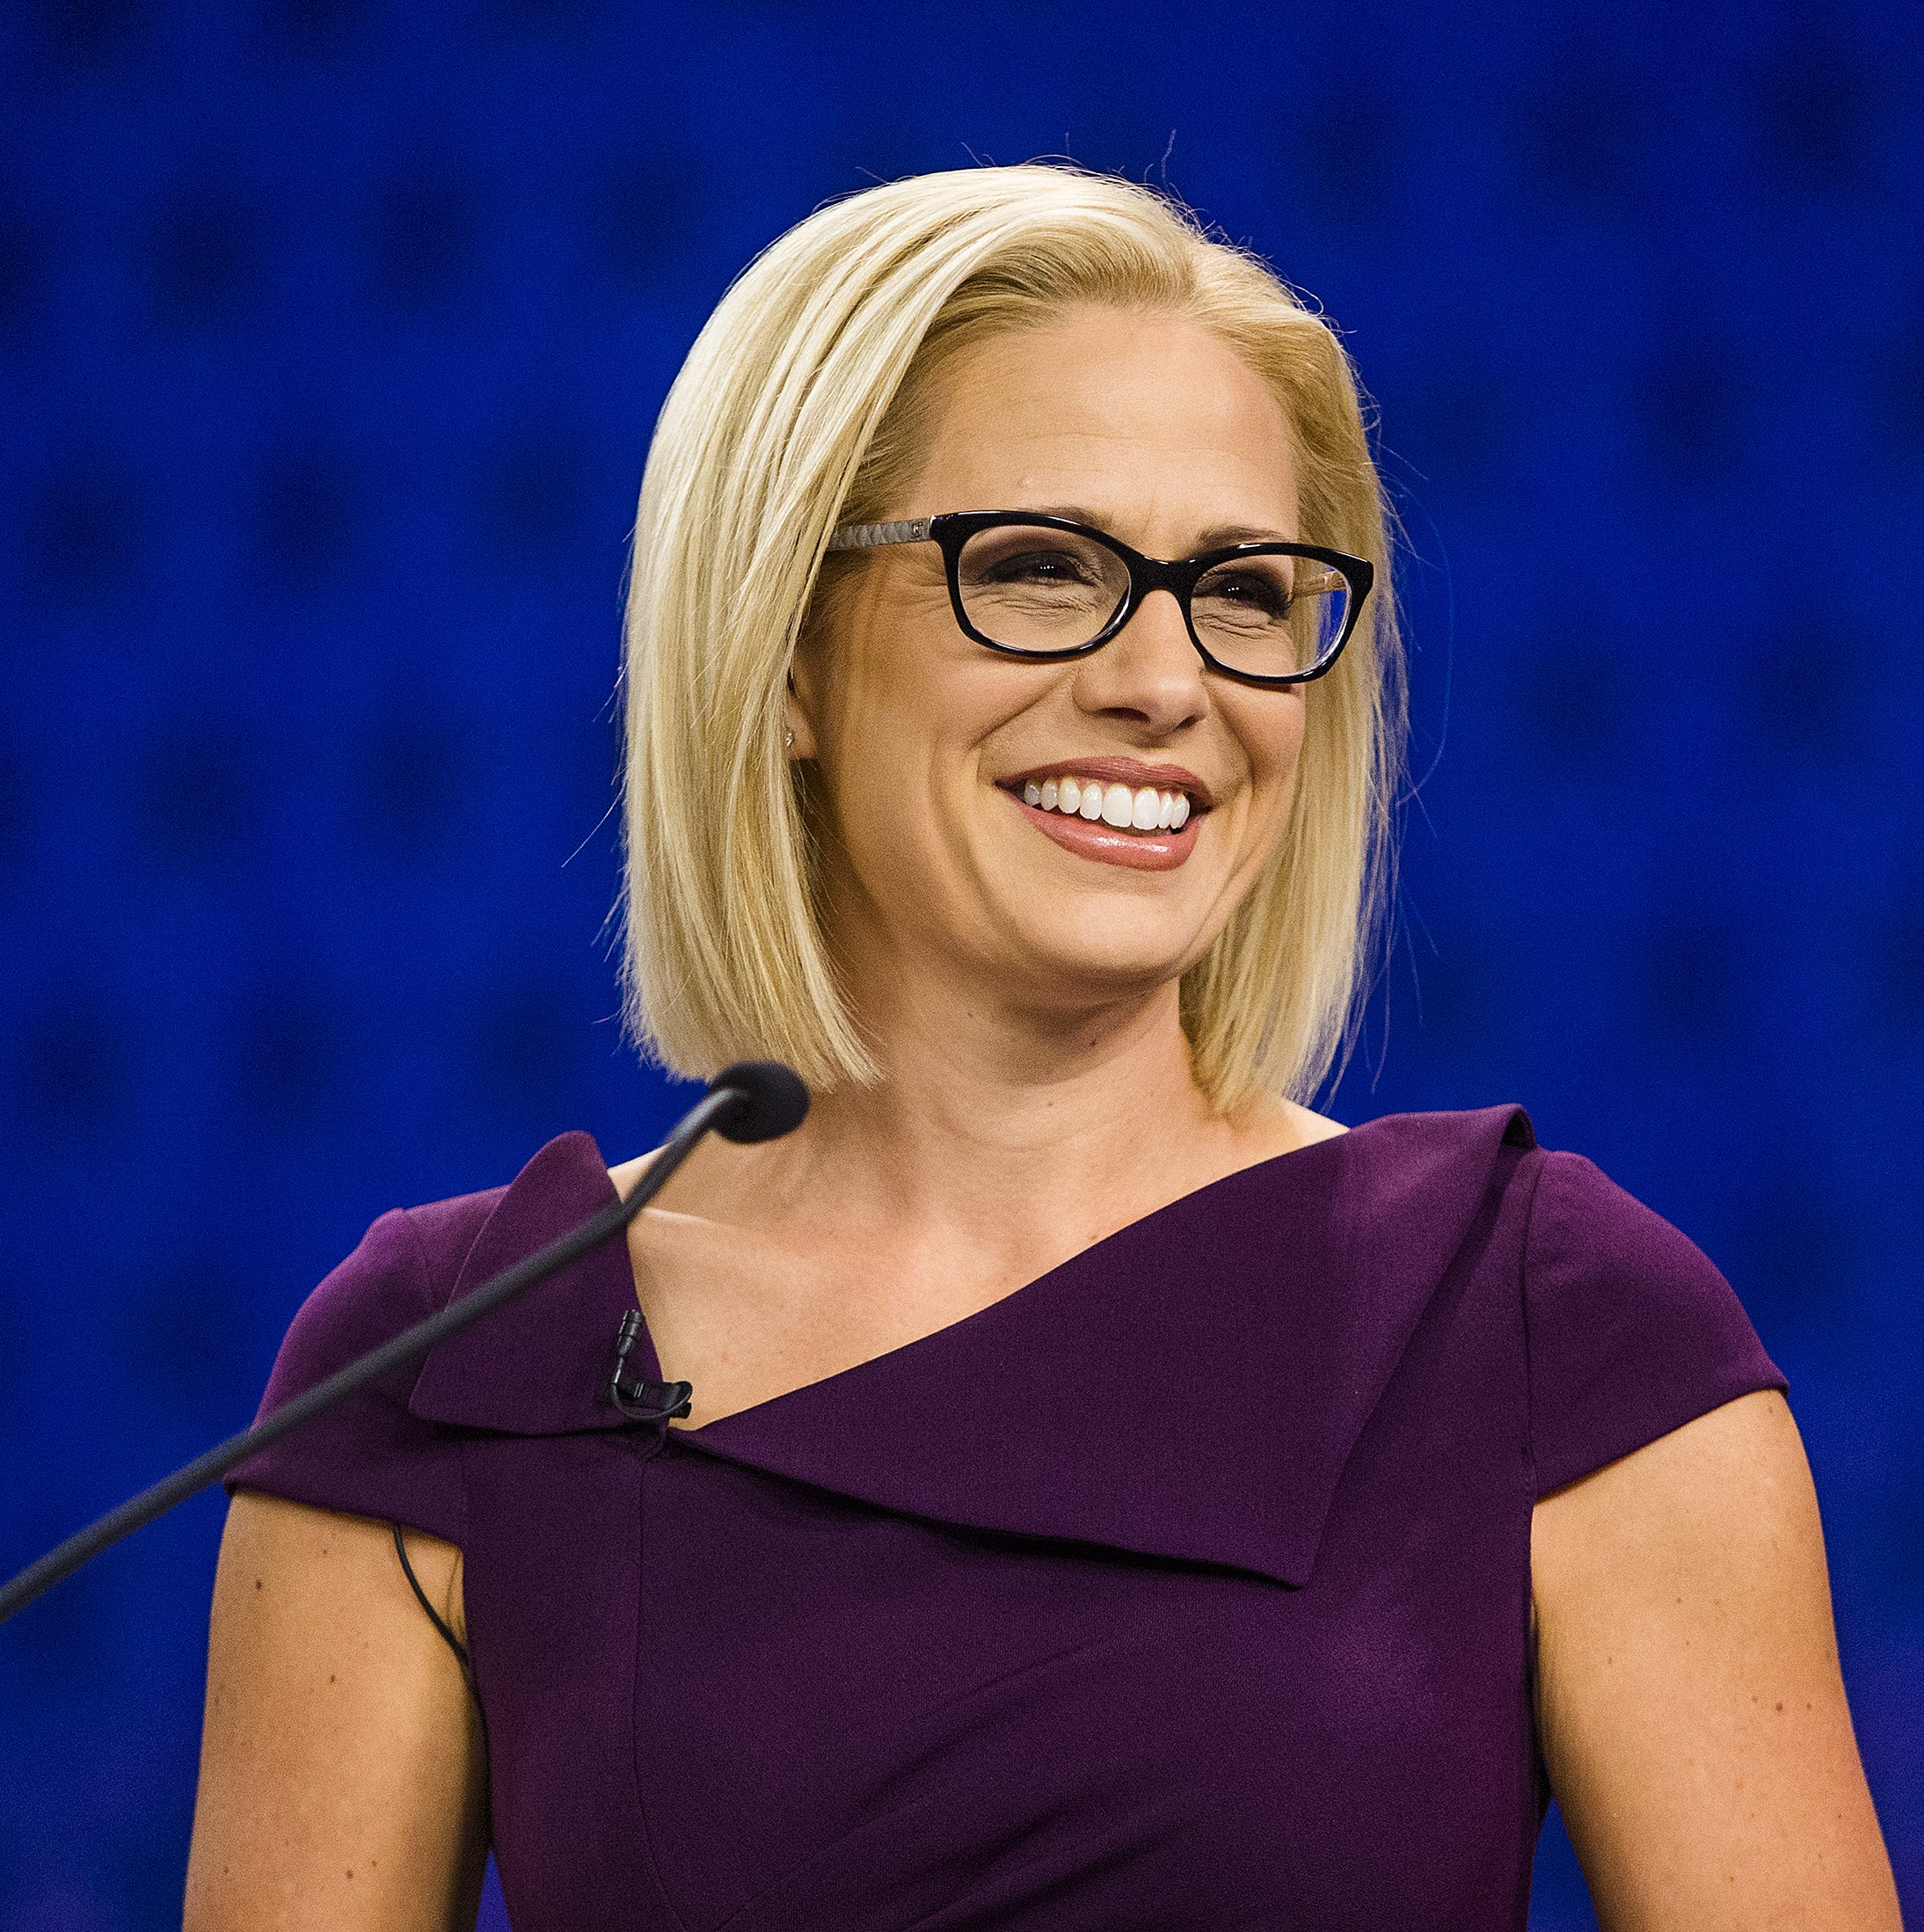 Kyrsten Sinema widens lead again over Martha McSally in pivotal day for Arizona's U.S. Senate race